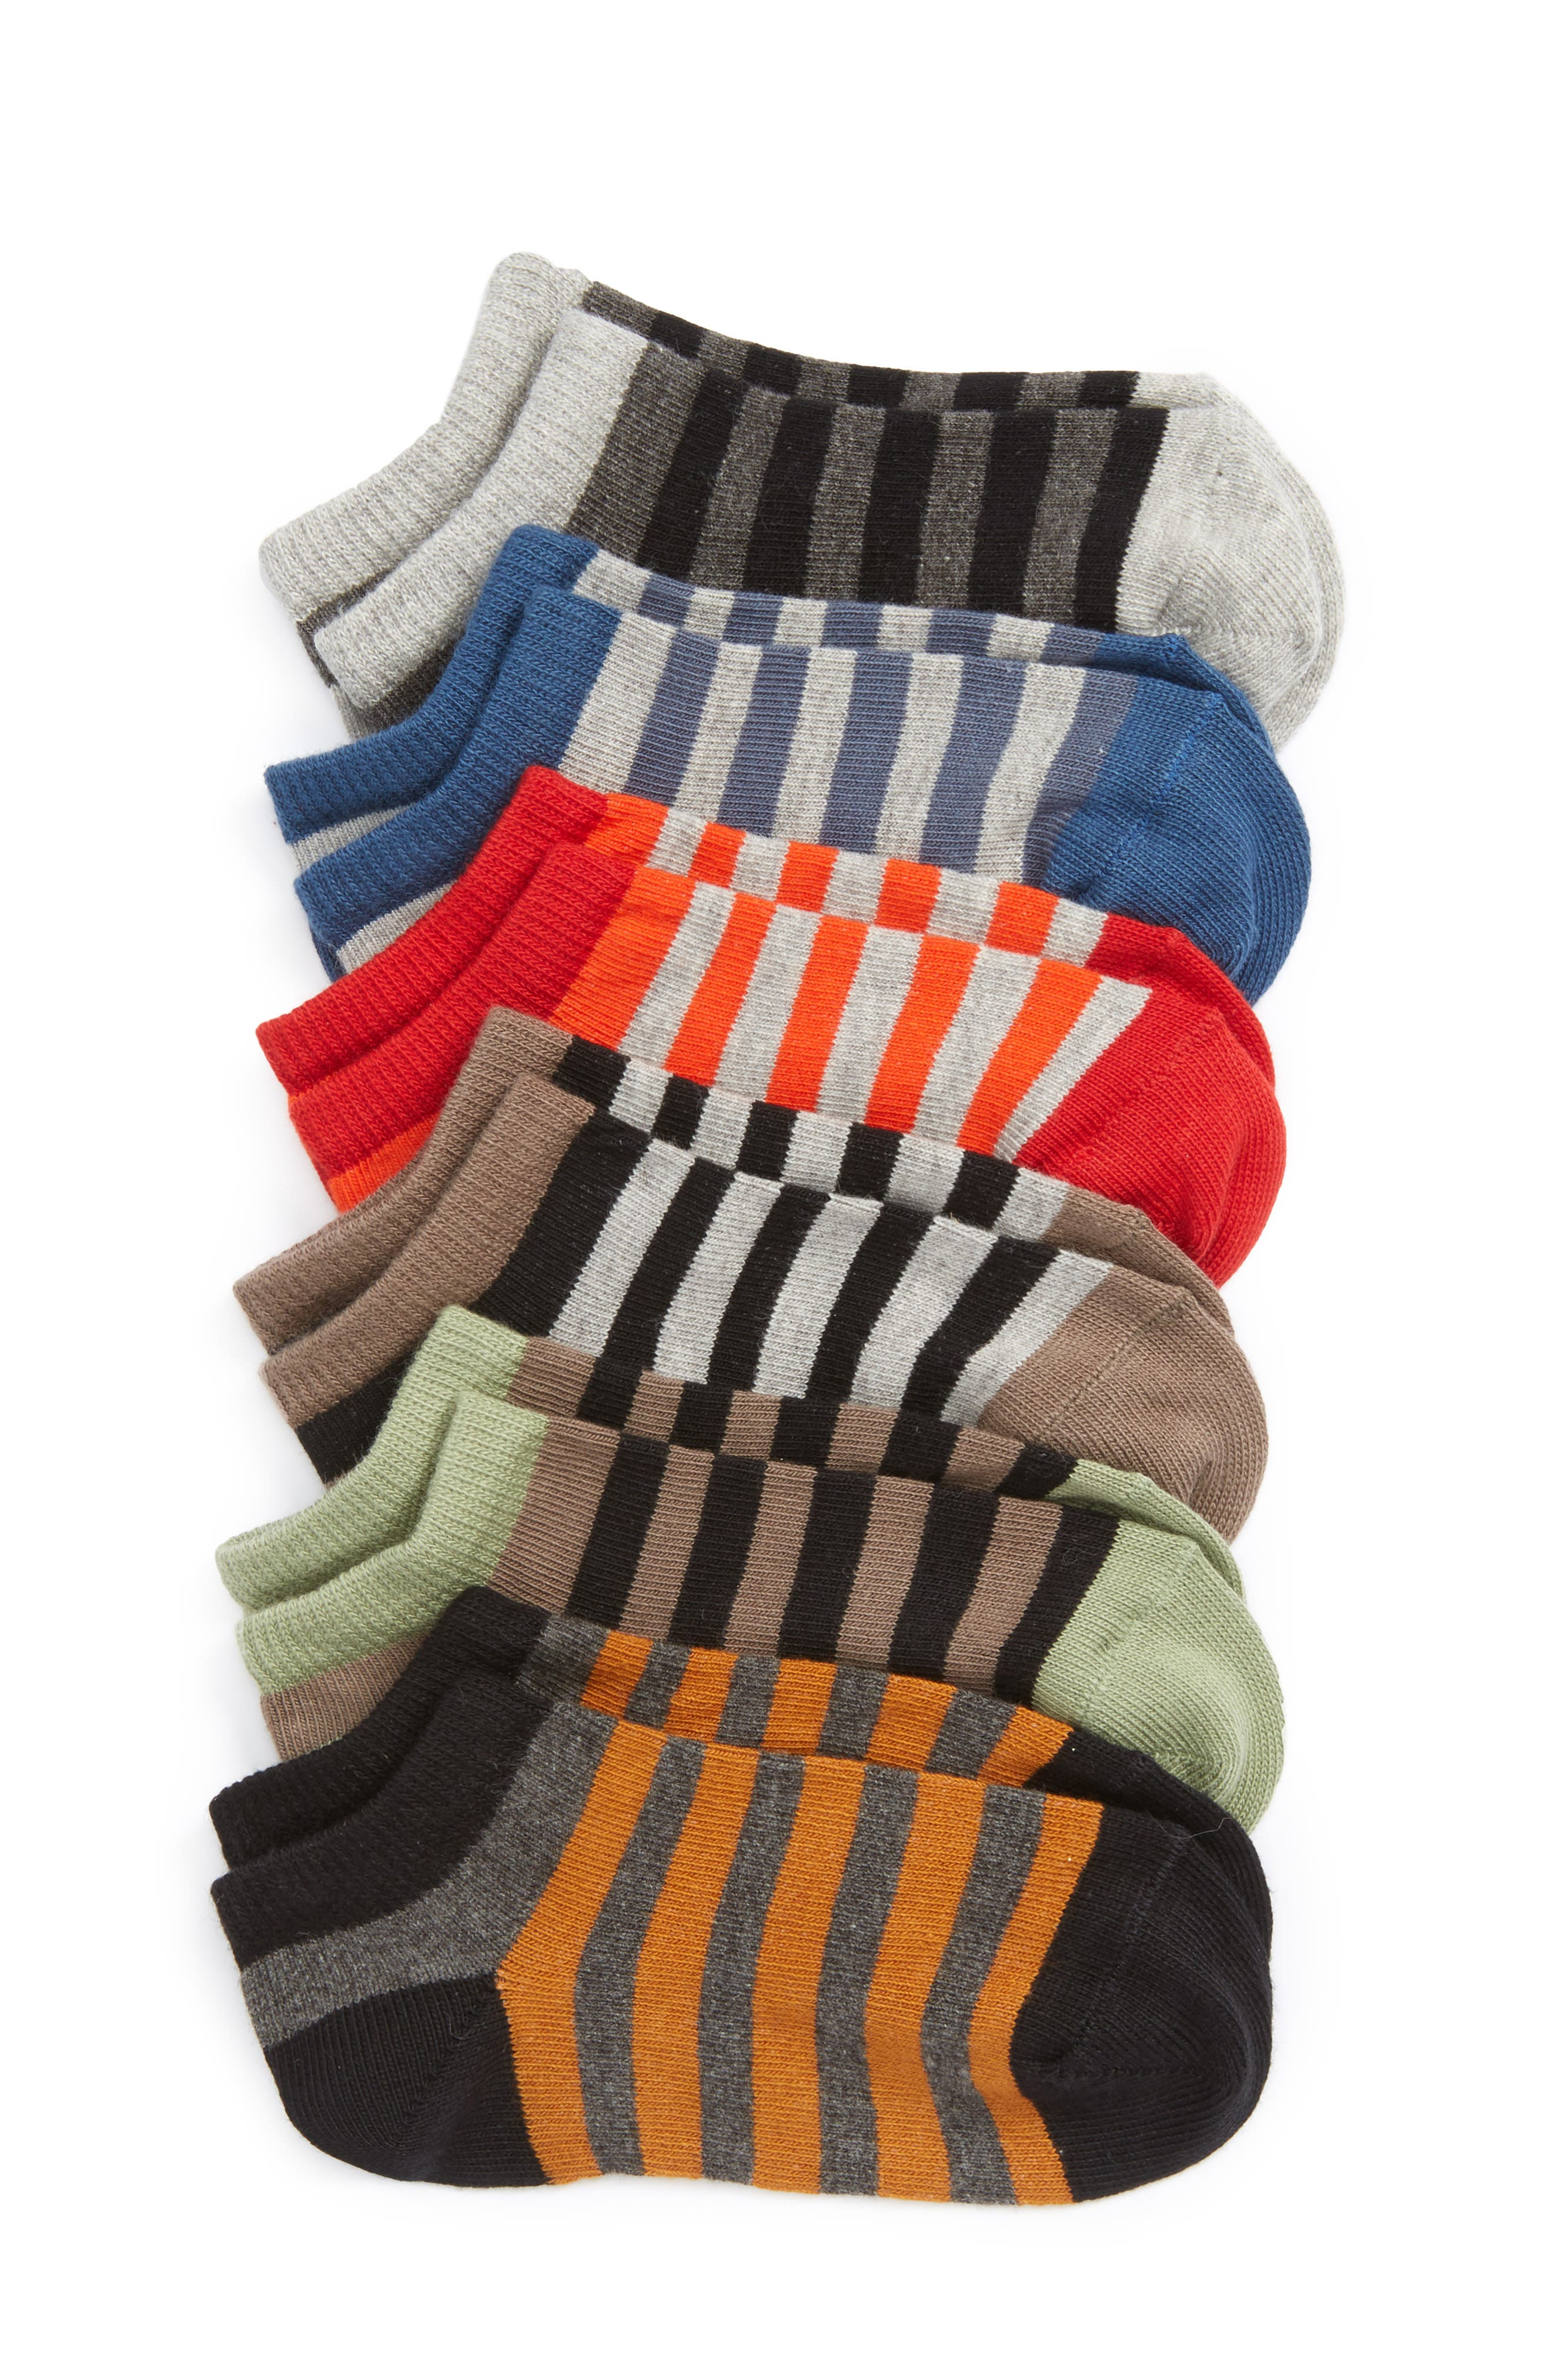 Assorted 6-Pack No-Show Socks,                         Main,                         color, 450